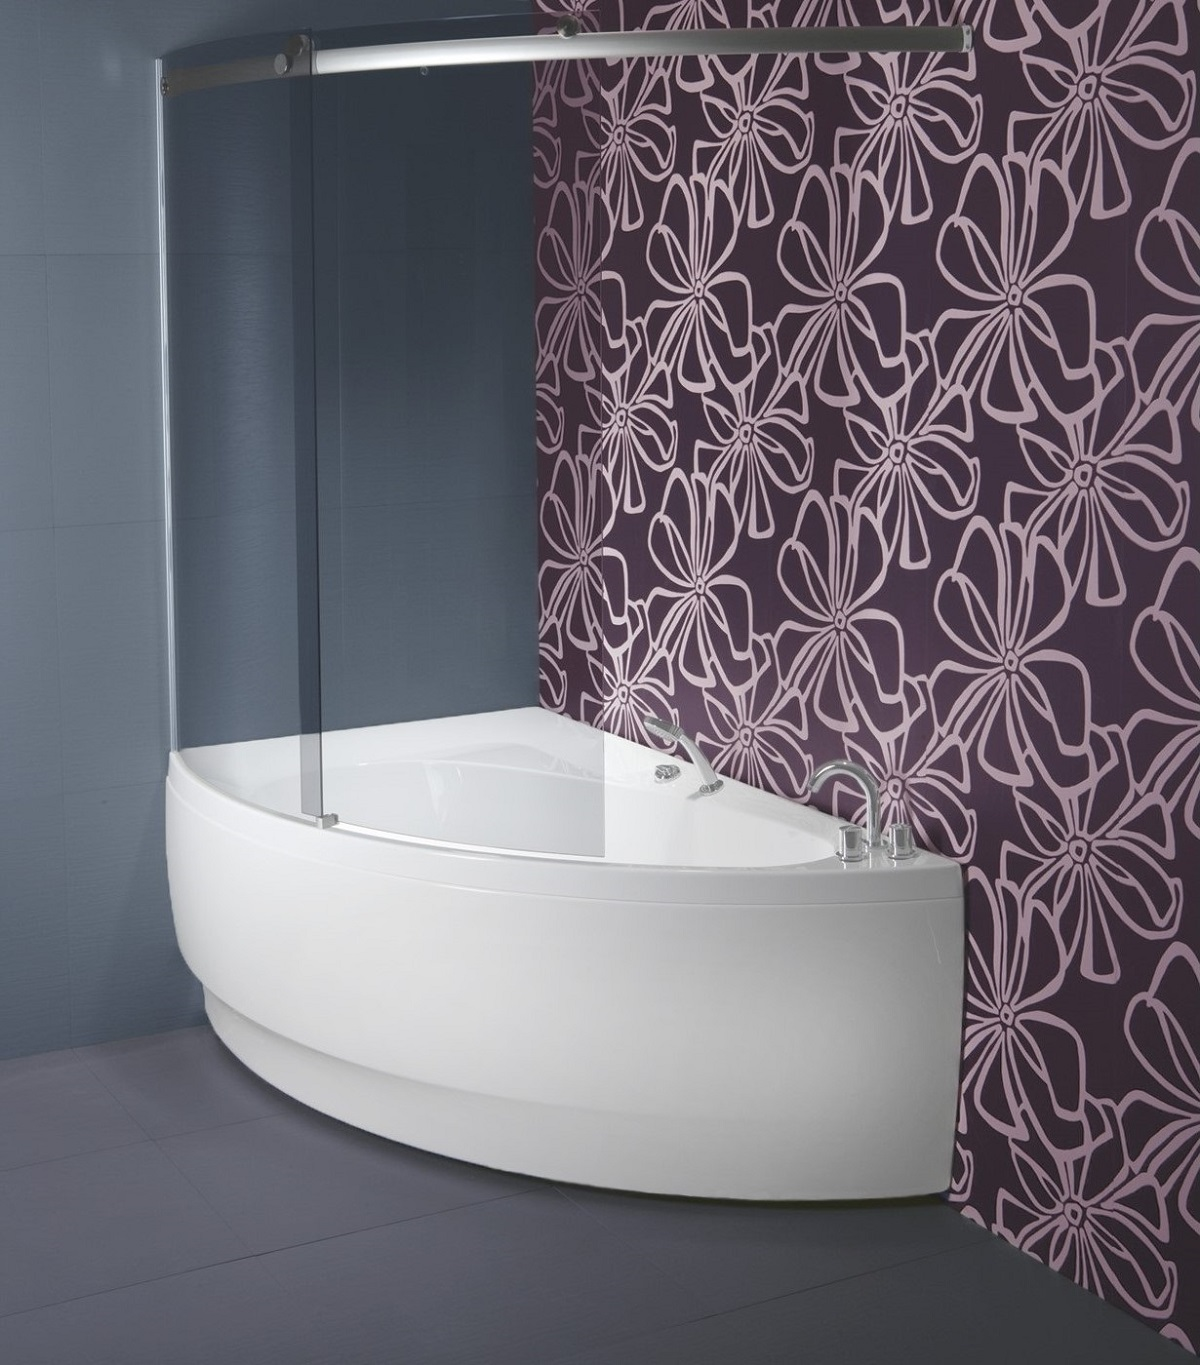 Aquatica idea l tinted curved glass shower wall for Curved glass wall